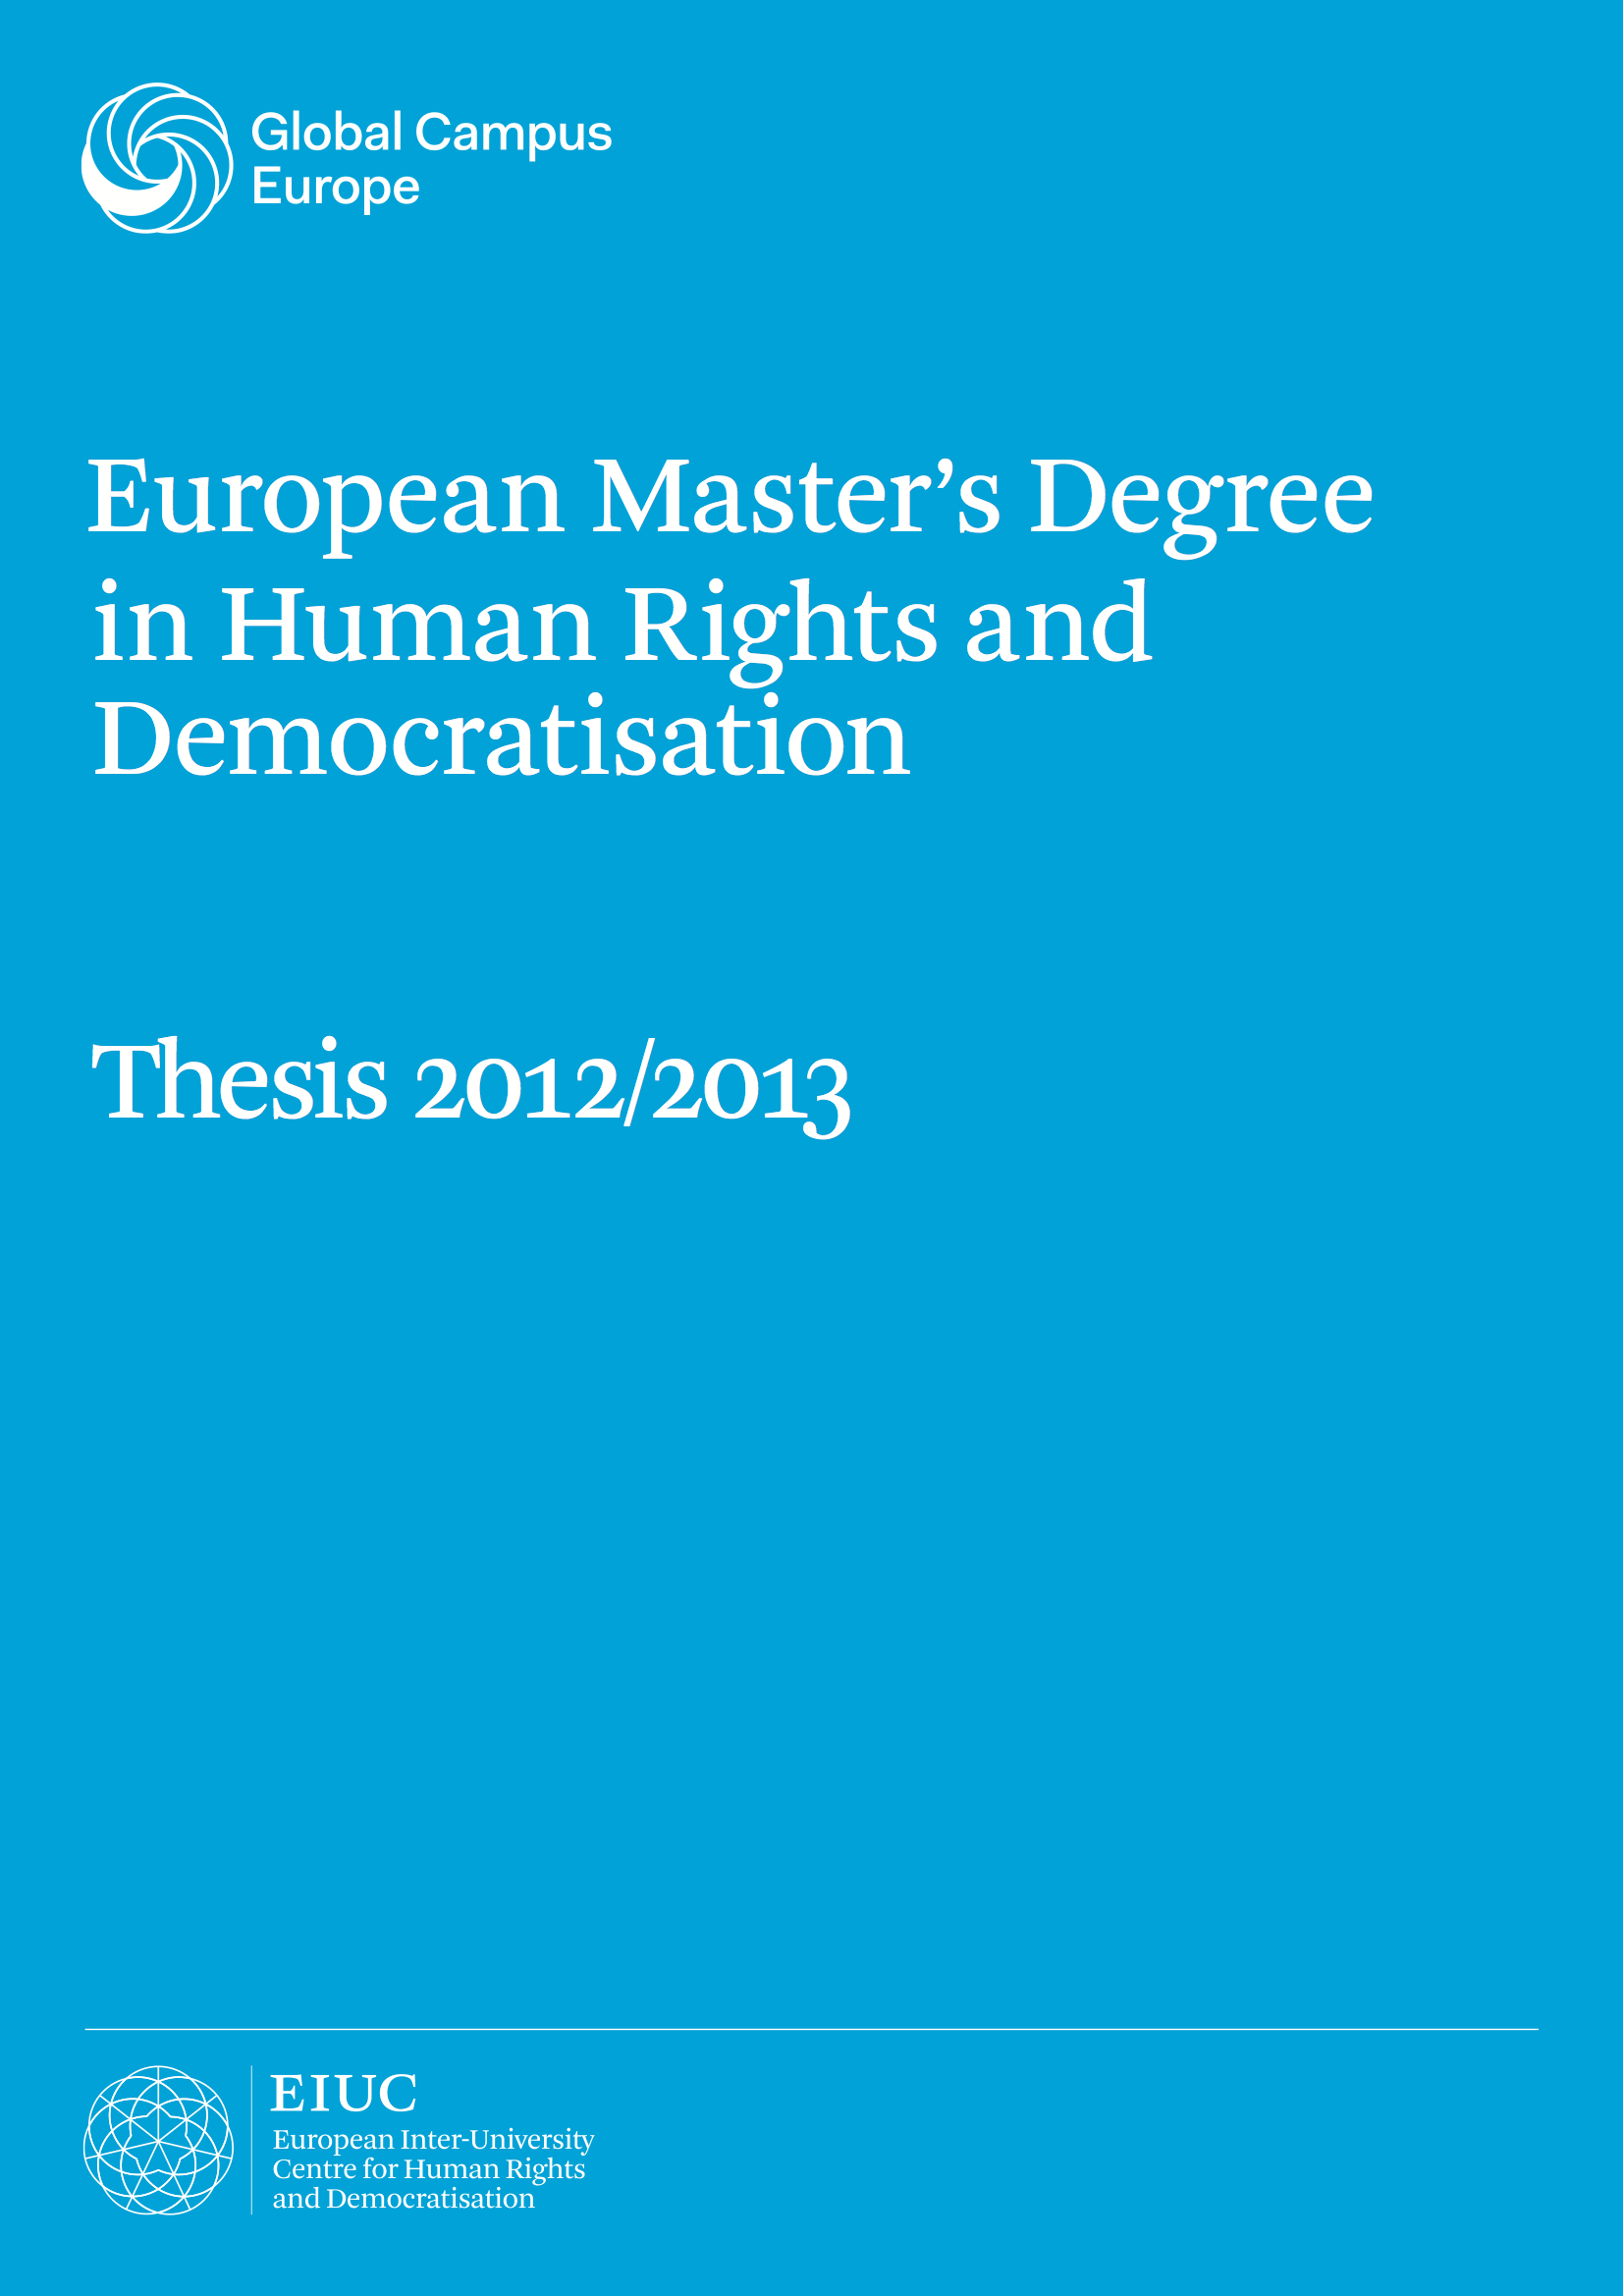 Gay rights thesis professional research proposal editor services us